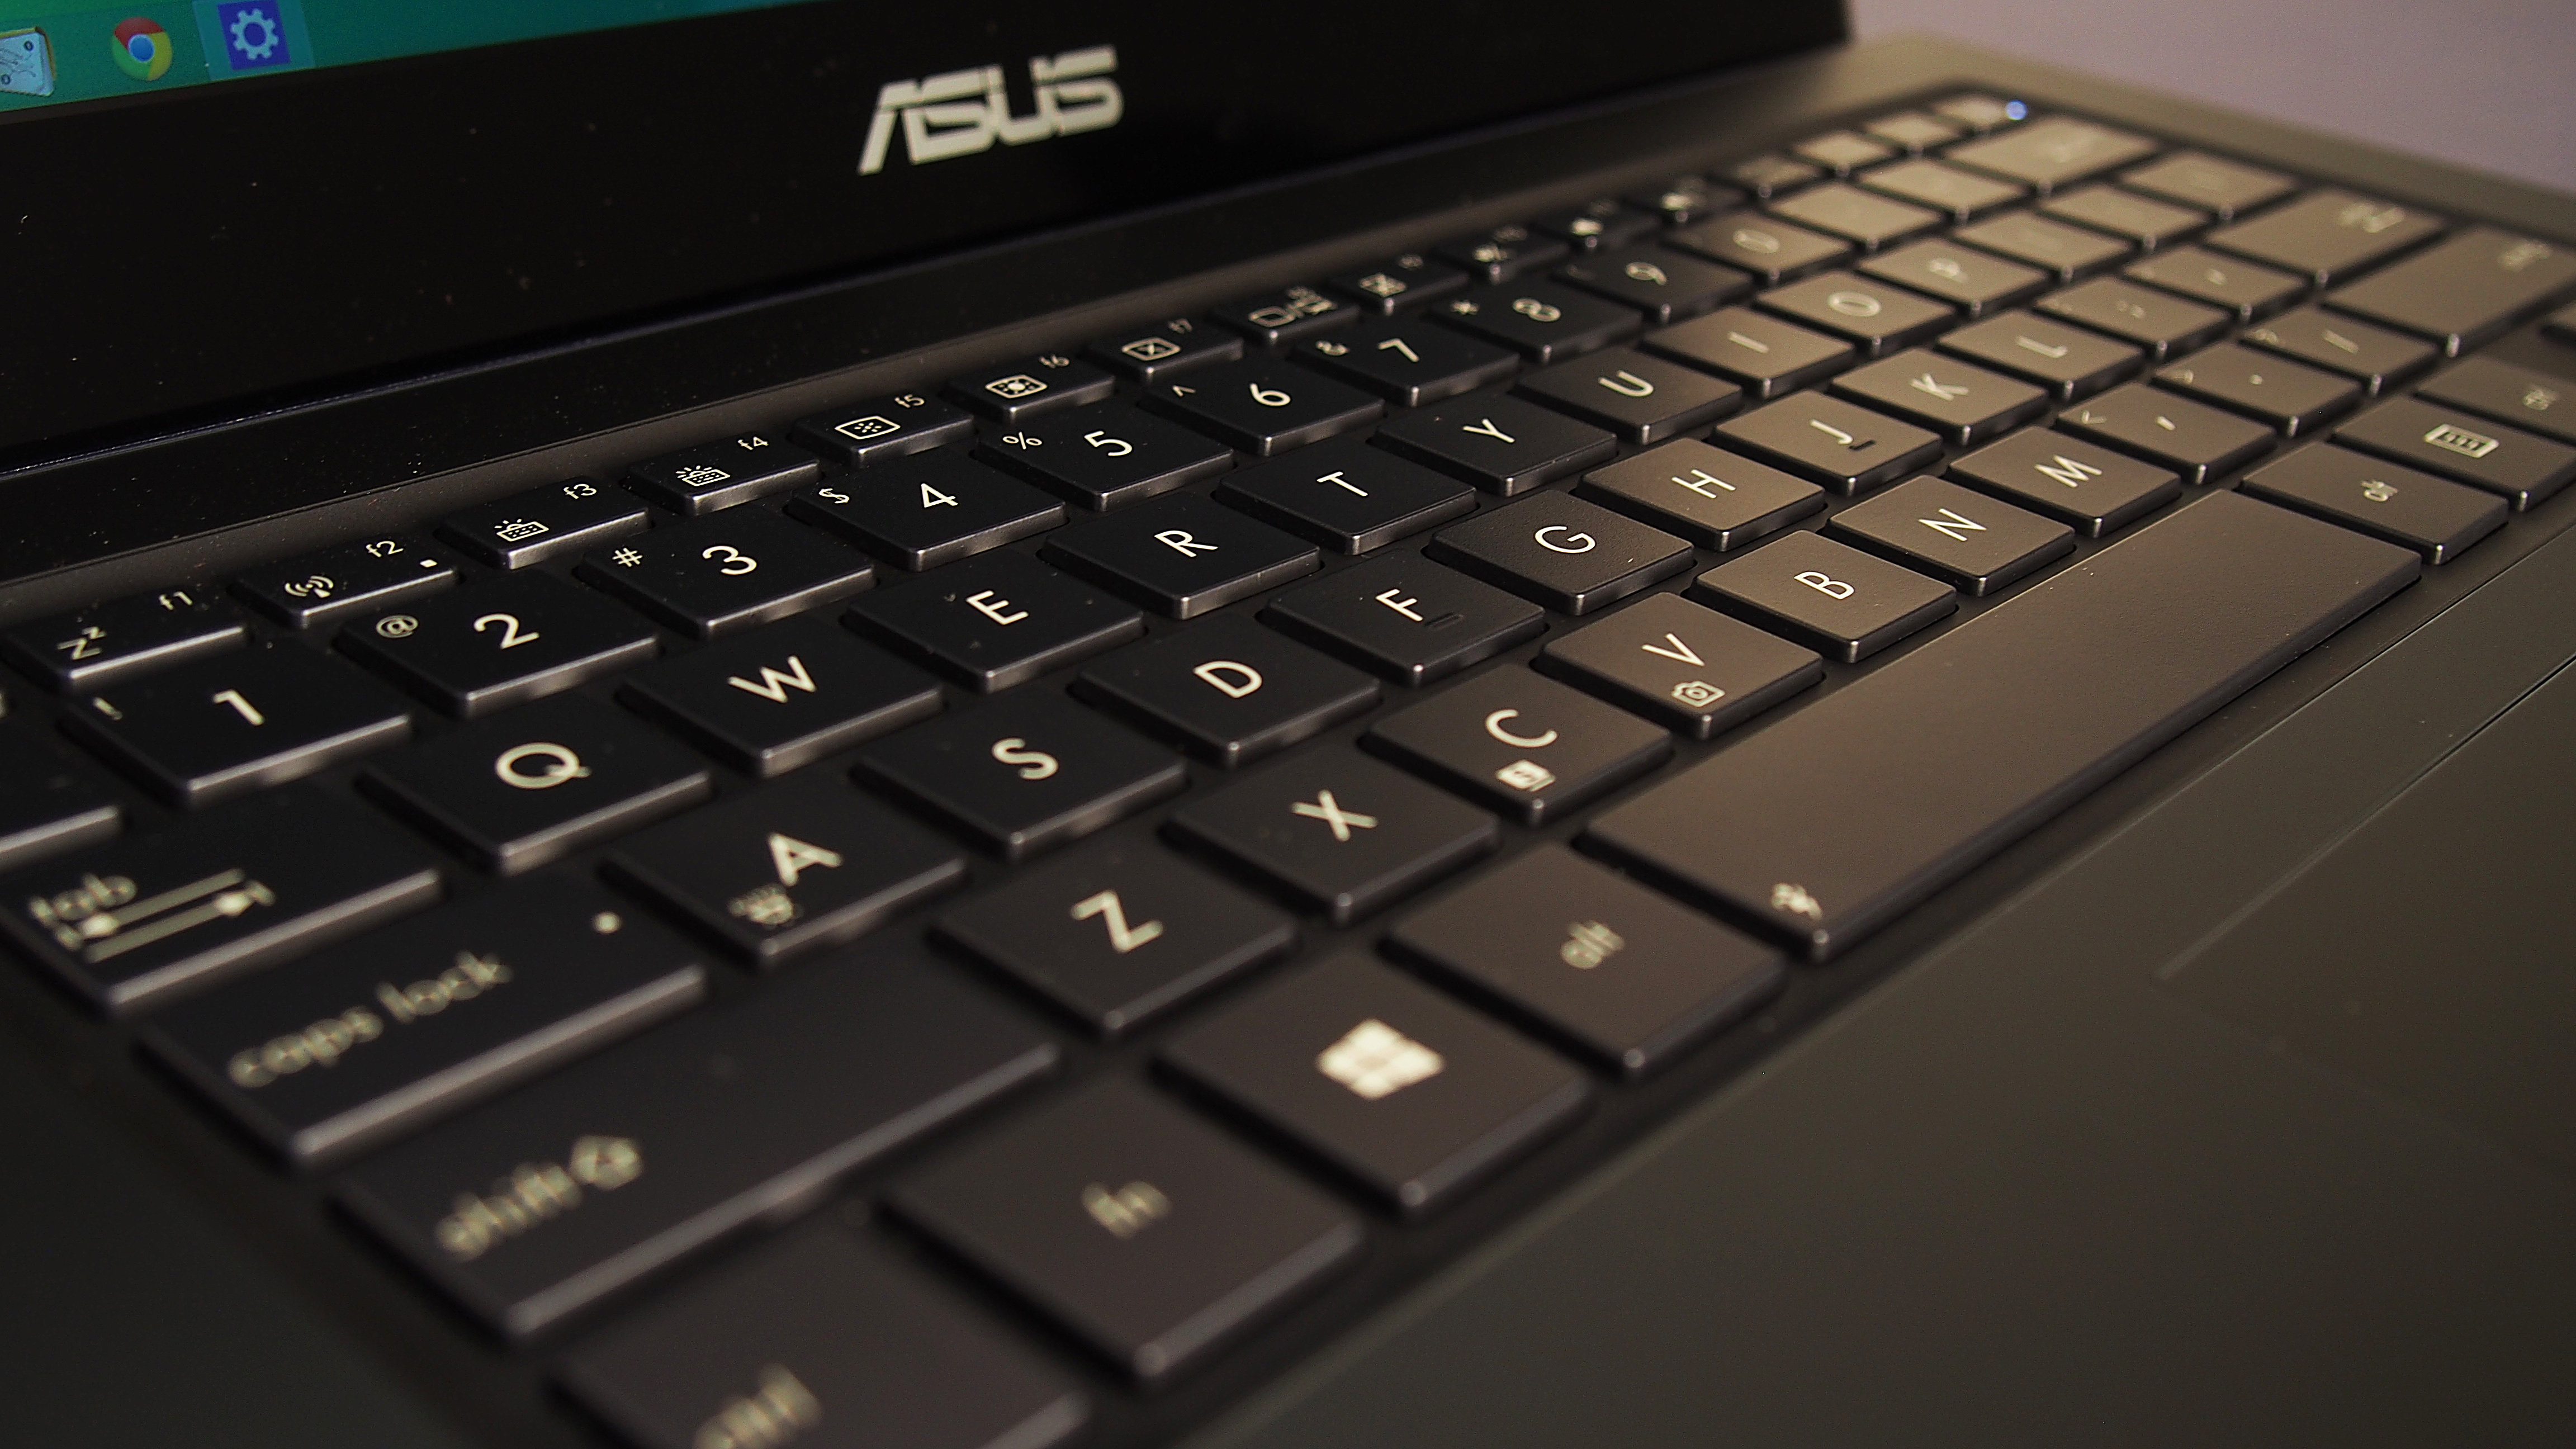 This Zenbook's keyboard is firm with plenty of action.